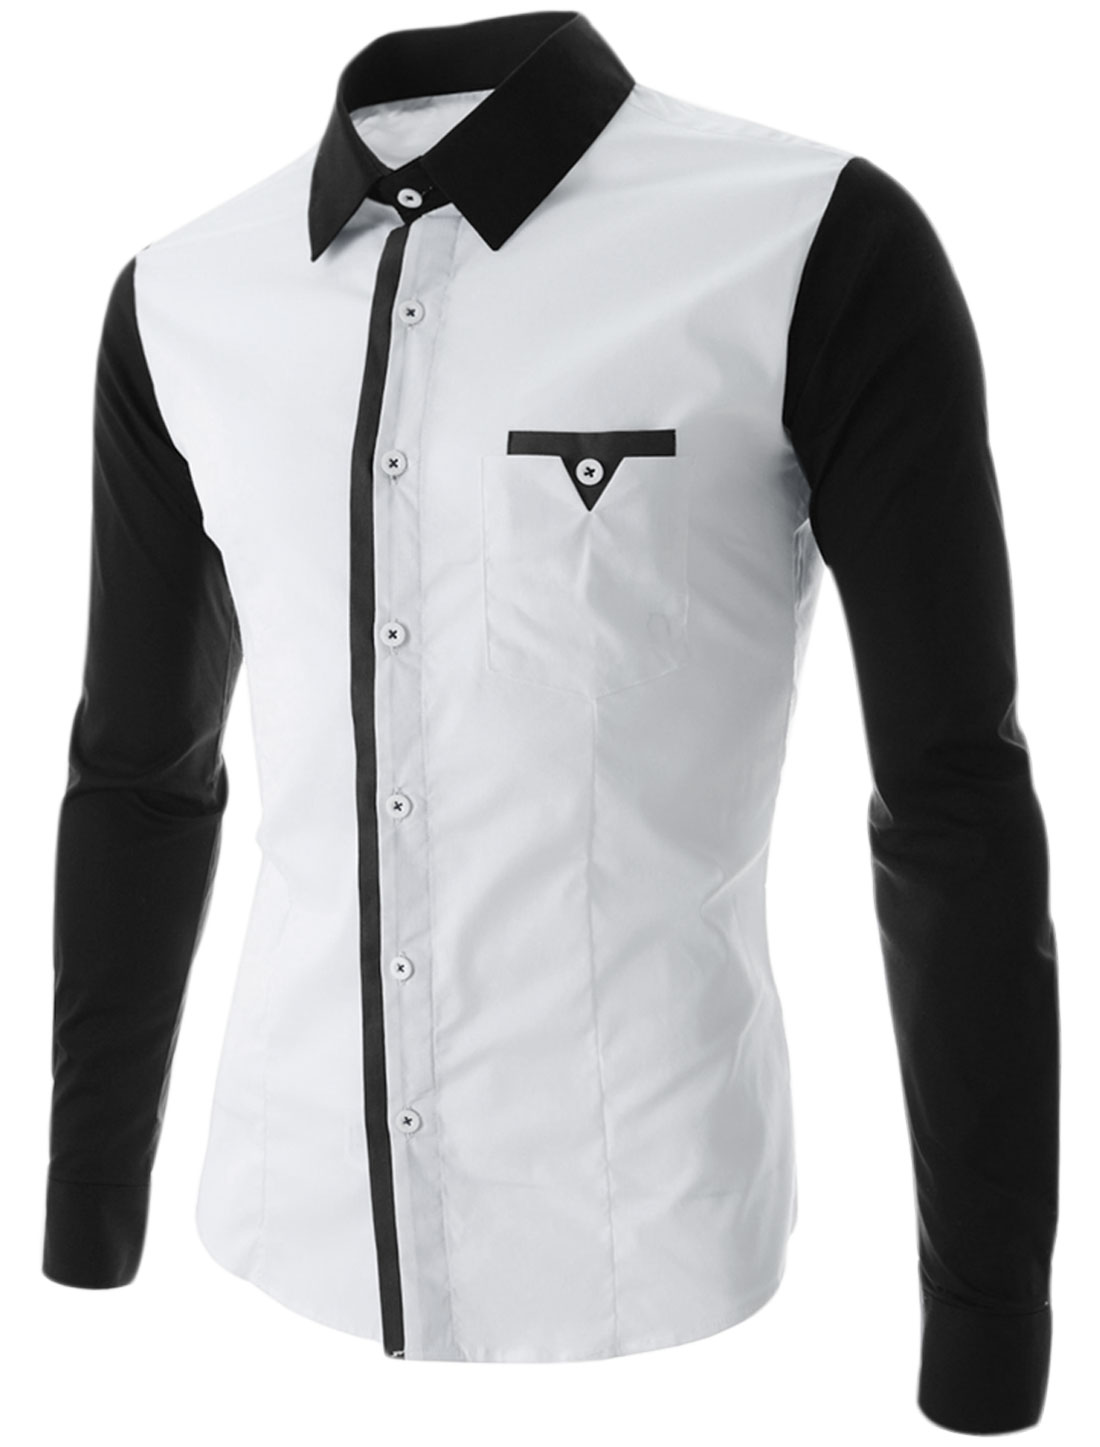 Man Button Closure Point Collar Chest Pocket Casual Shirt White M